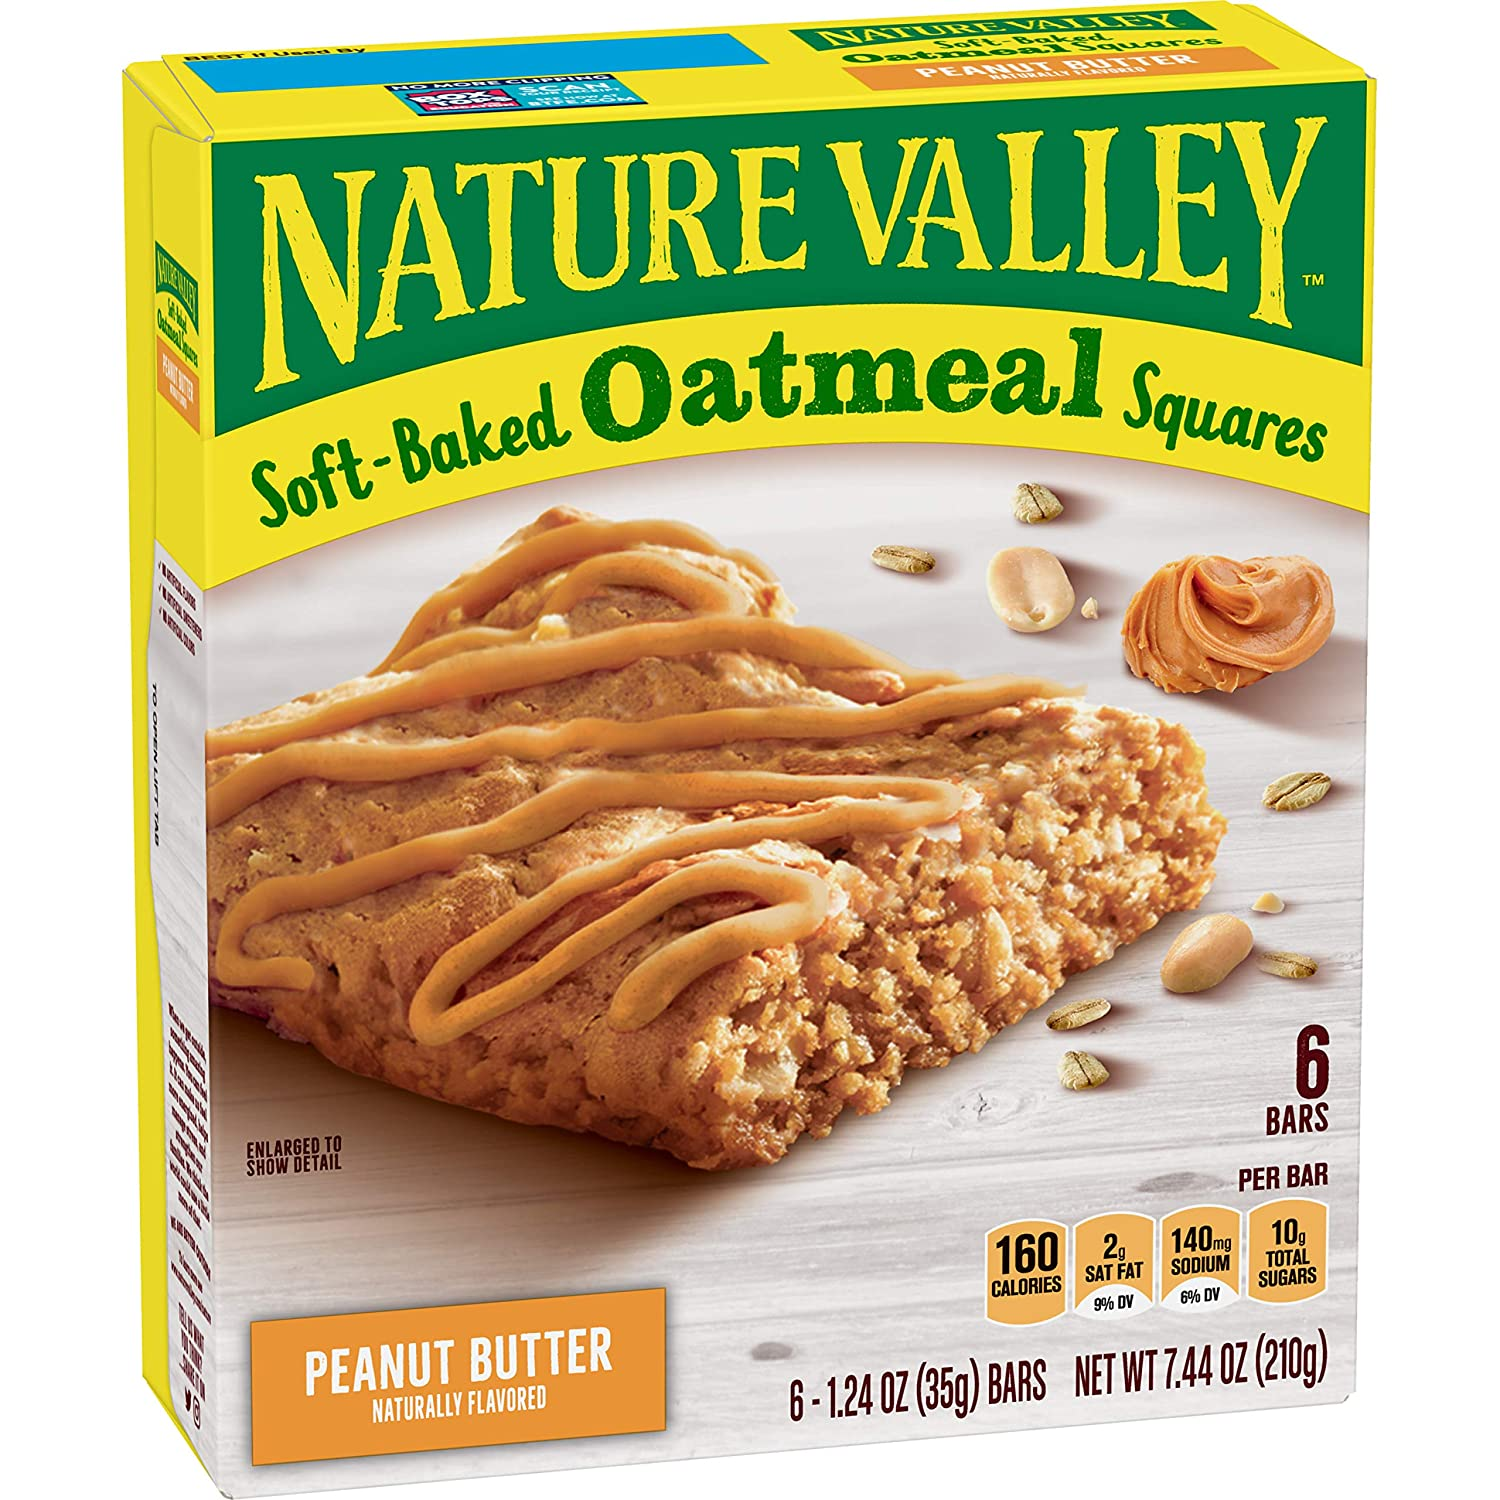 Nature Valley Soft-Baked Oatmeal Squares Peanut Butter, 7.44 oz